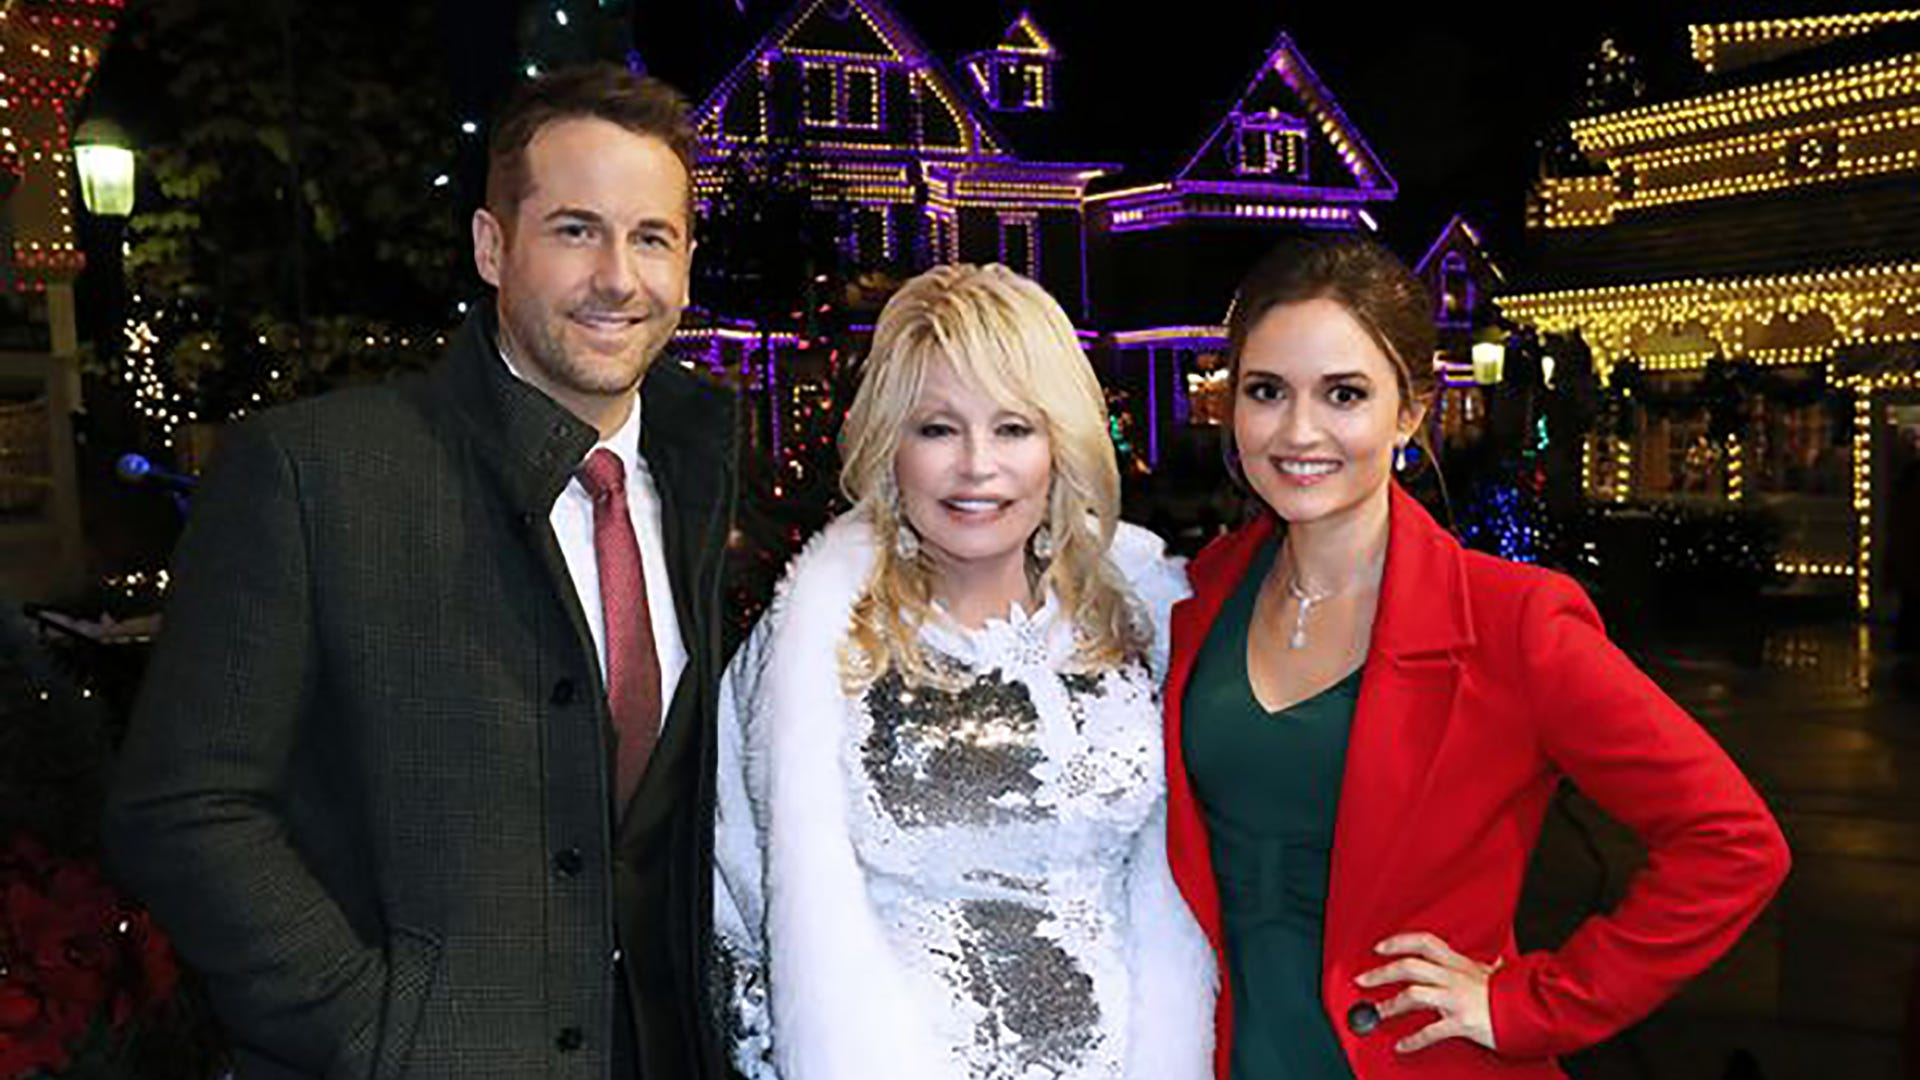 Niall Matter, Dolly Parton, and Danica McKellar, Christmas in Dollywood